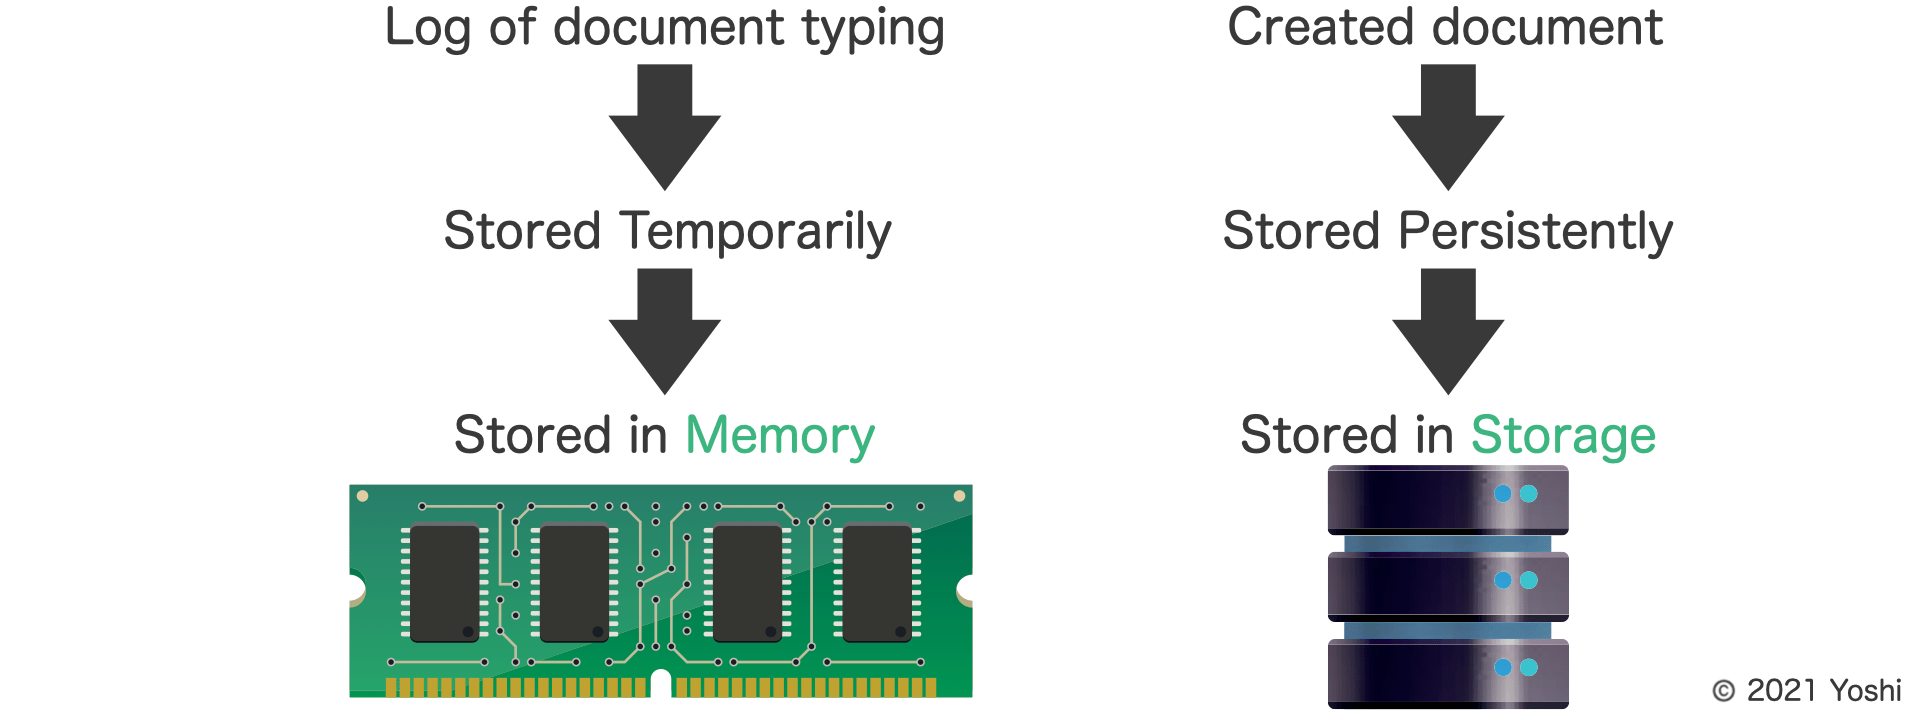 typing log is stored in memory